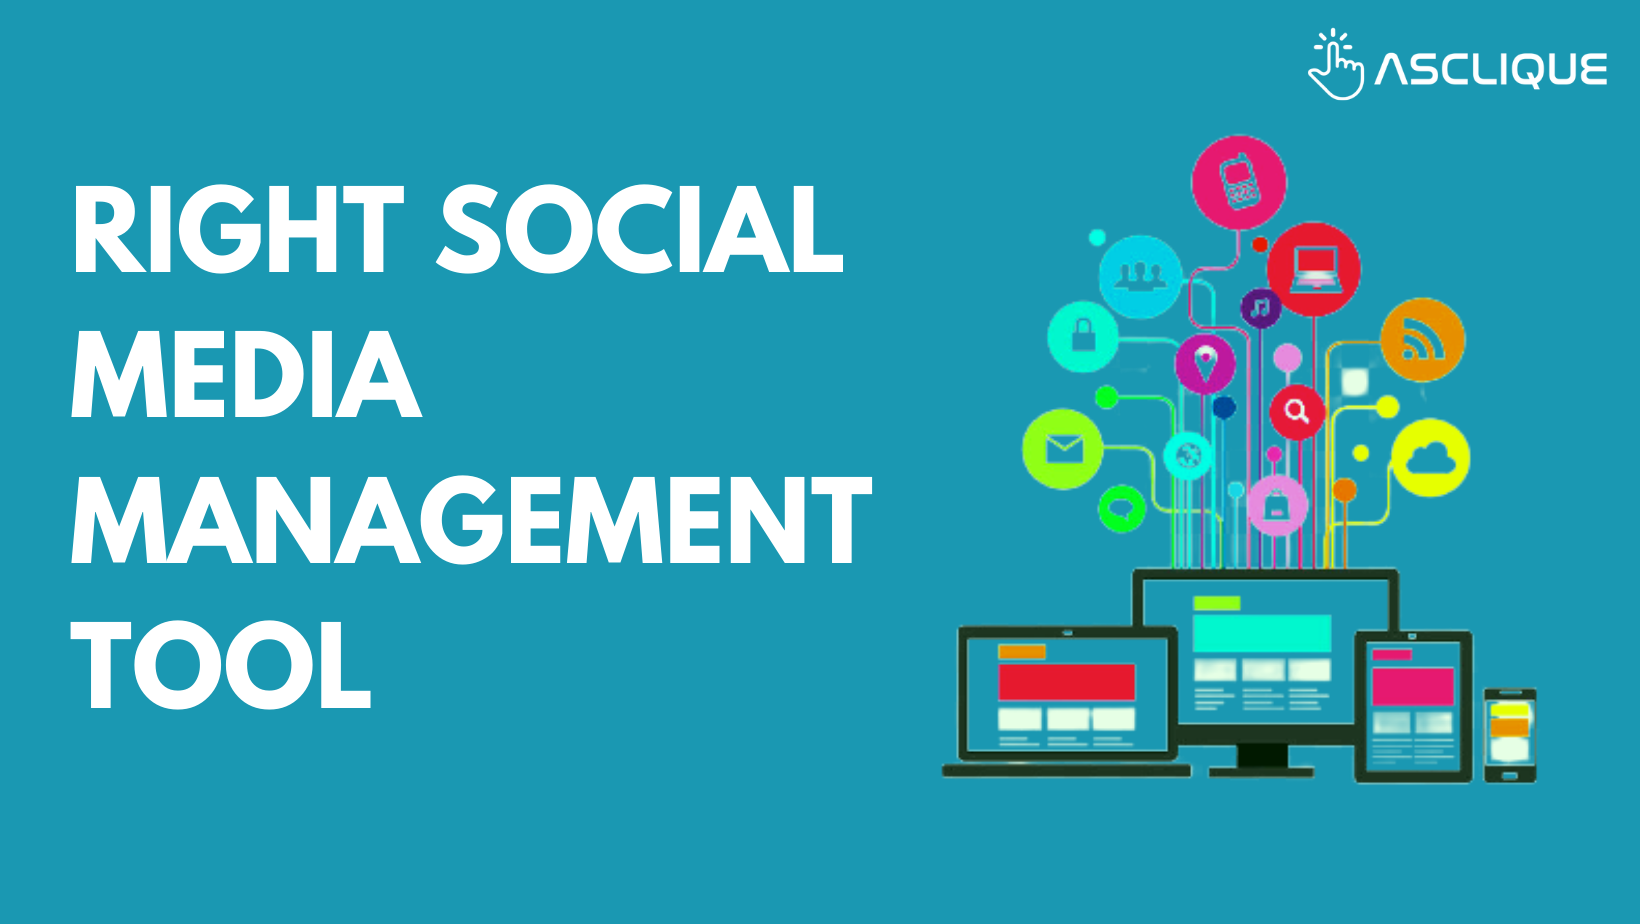 7 tips on how to choose the right social media management tool.